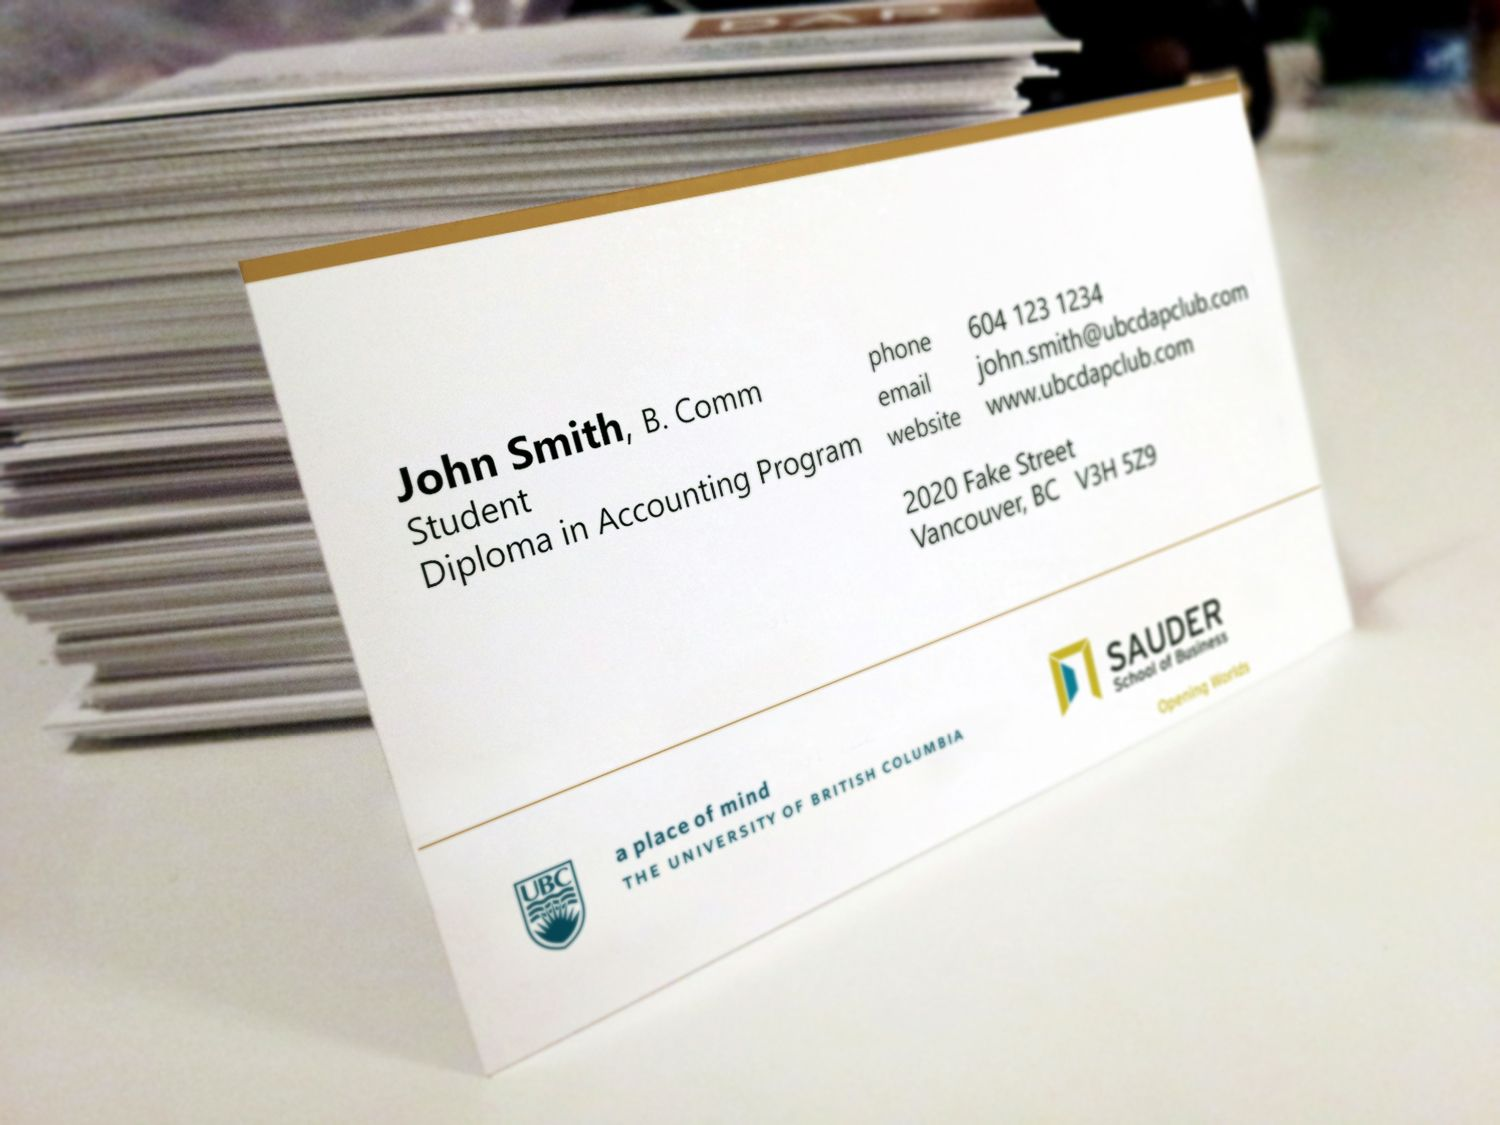 Smart Ways Of Using Business Cards in Networking - Business Card ...